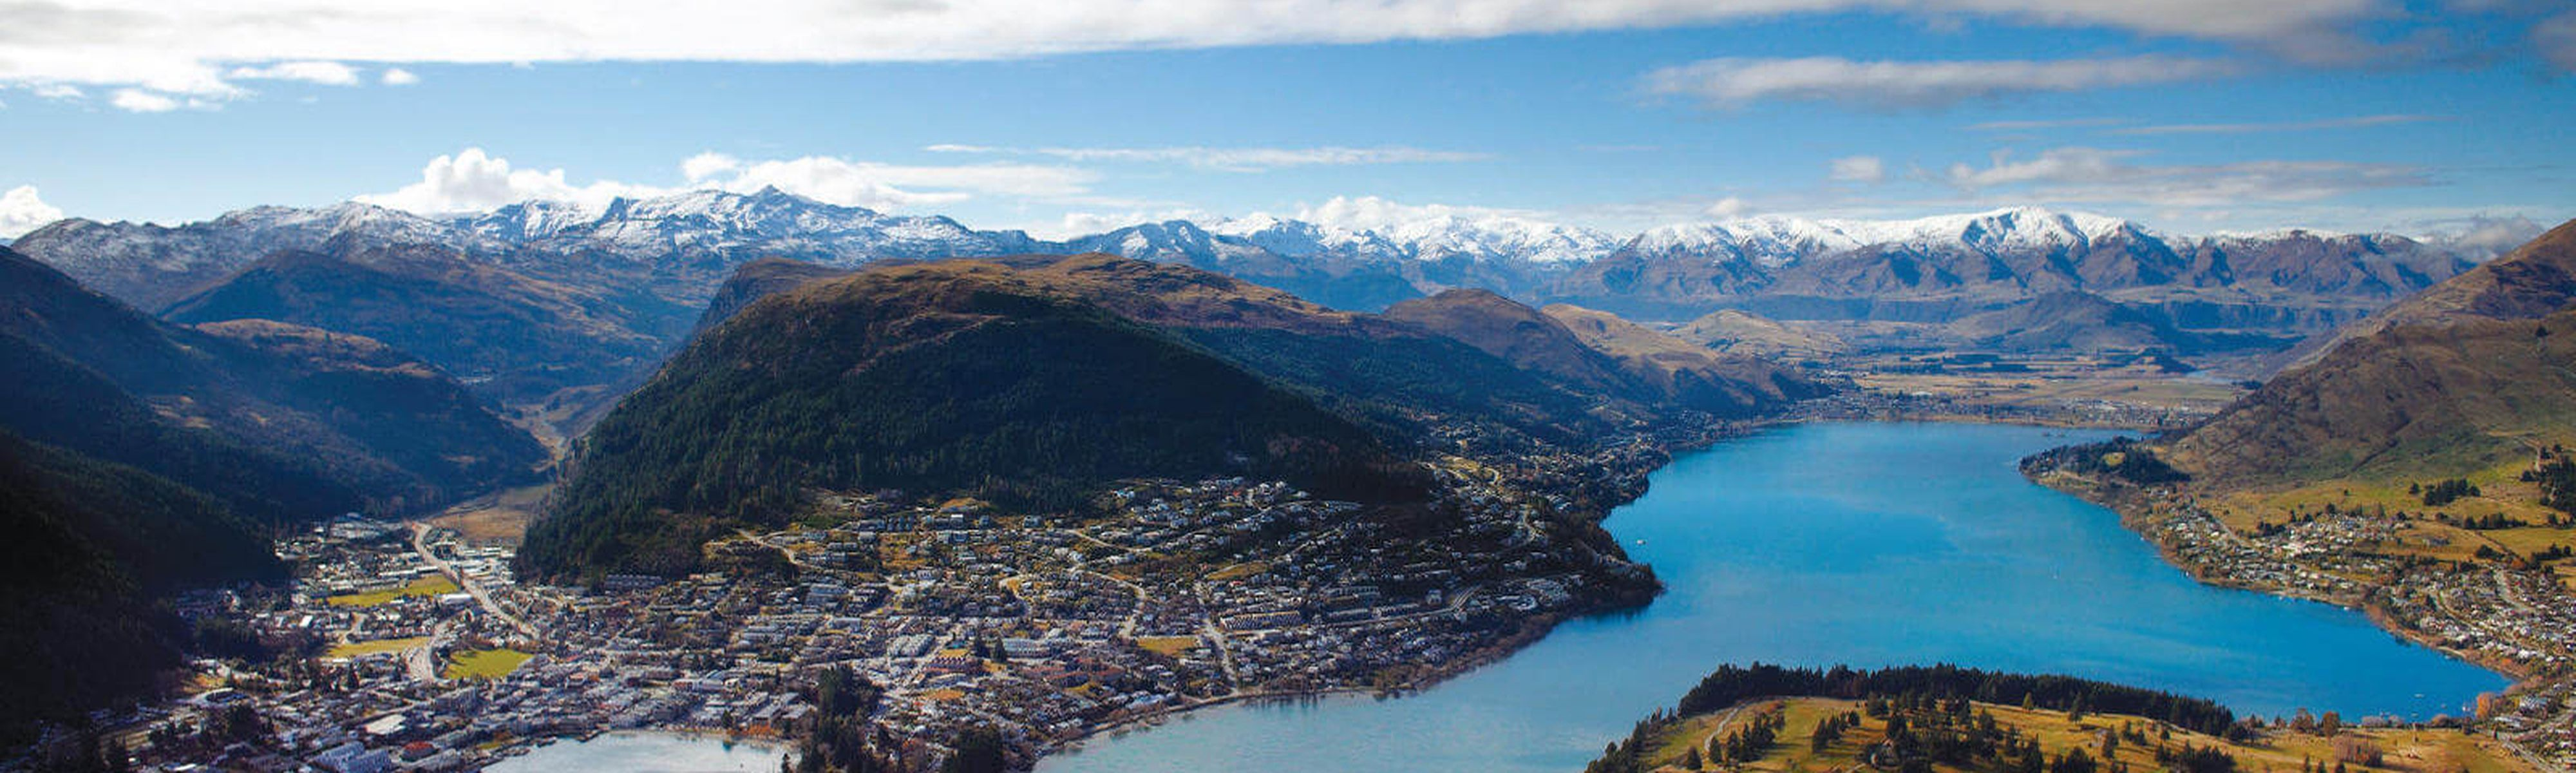 skyline of city of queenstown new zealand